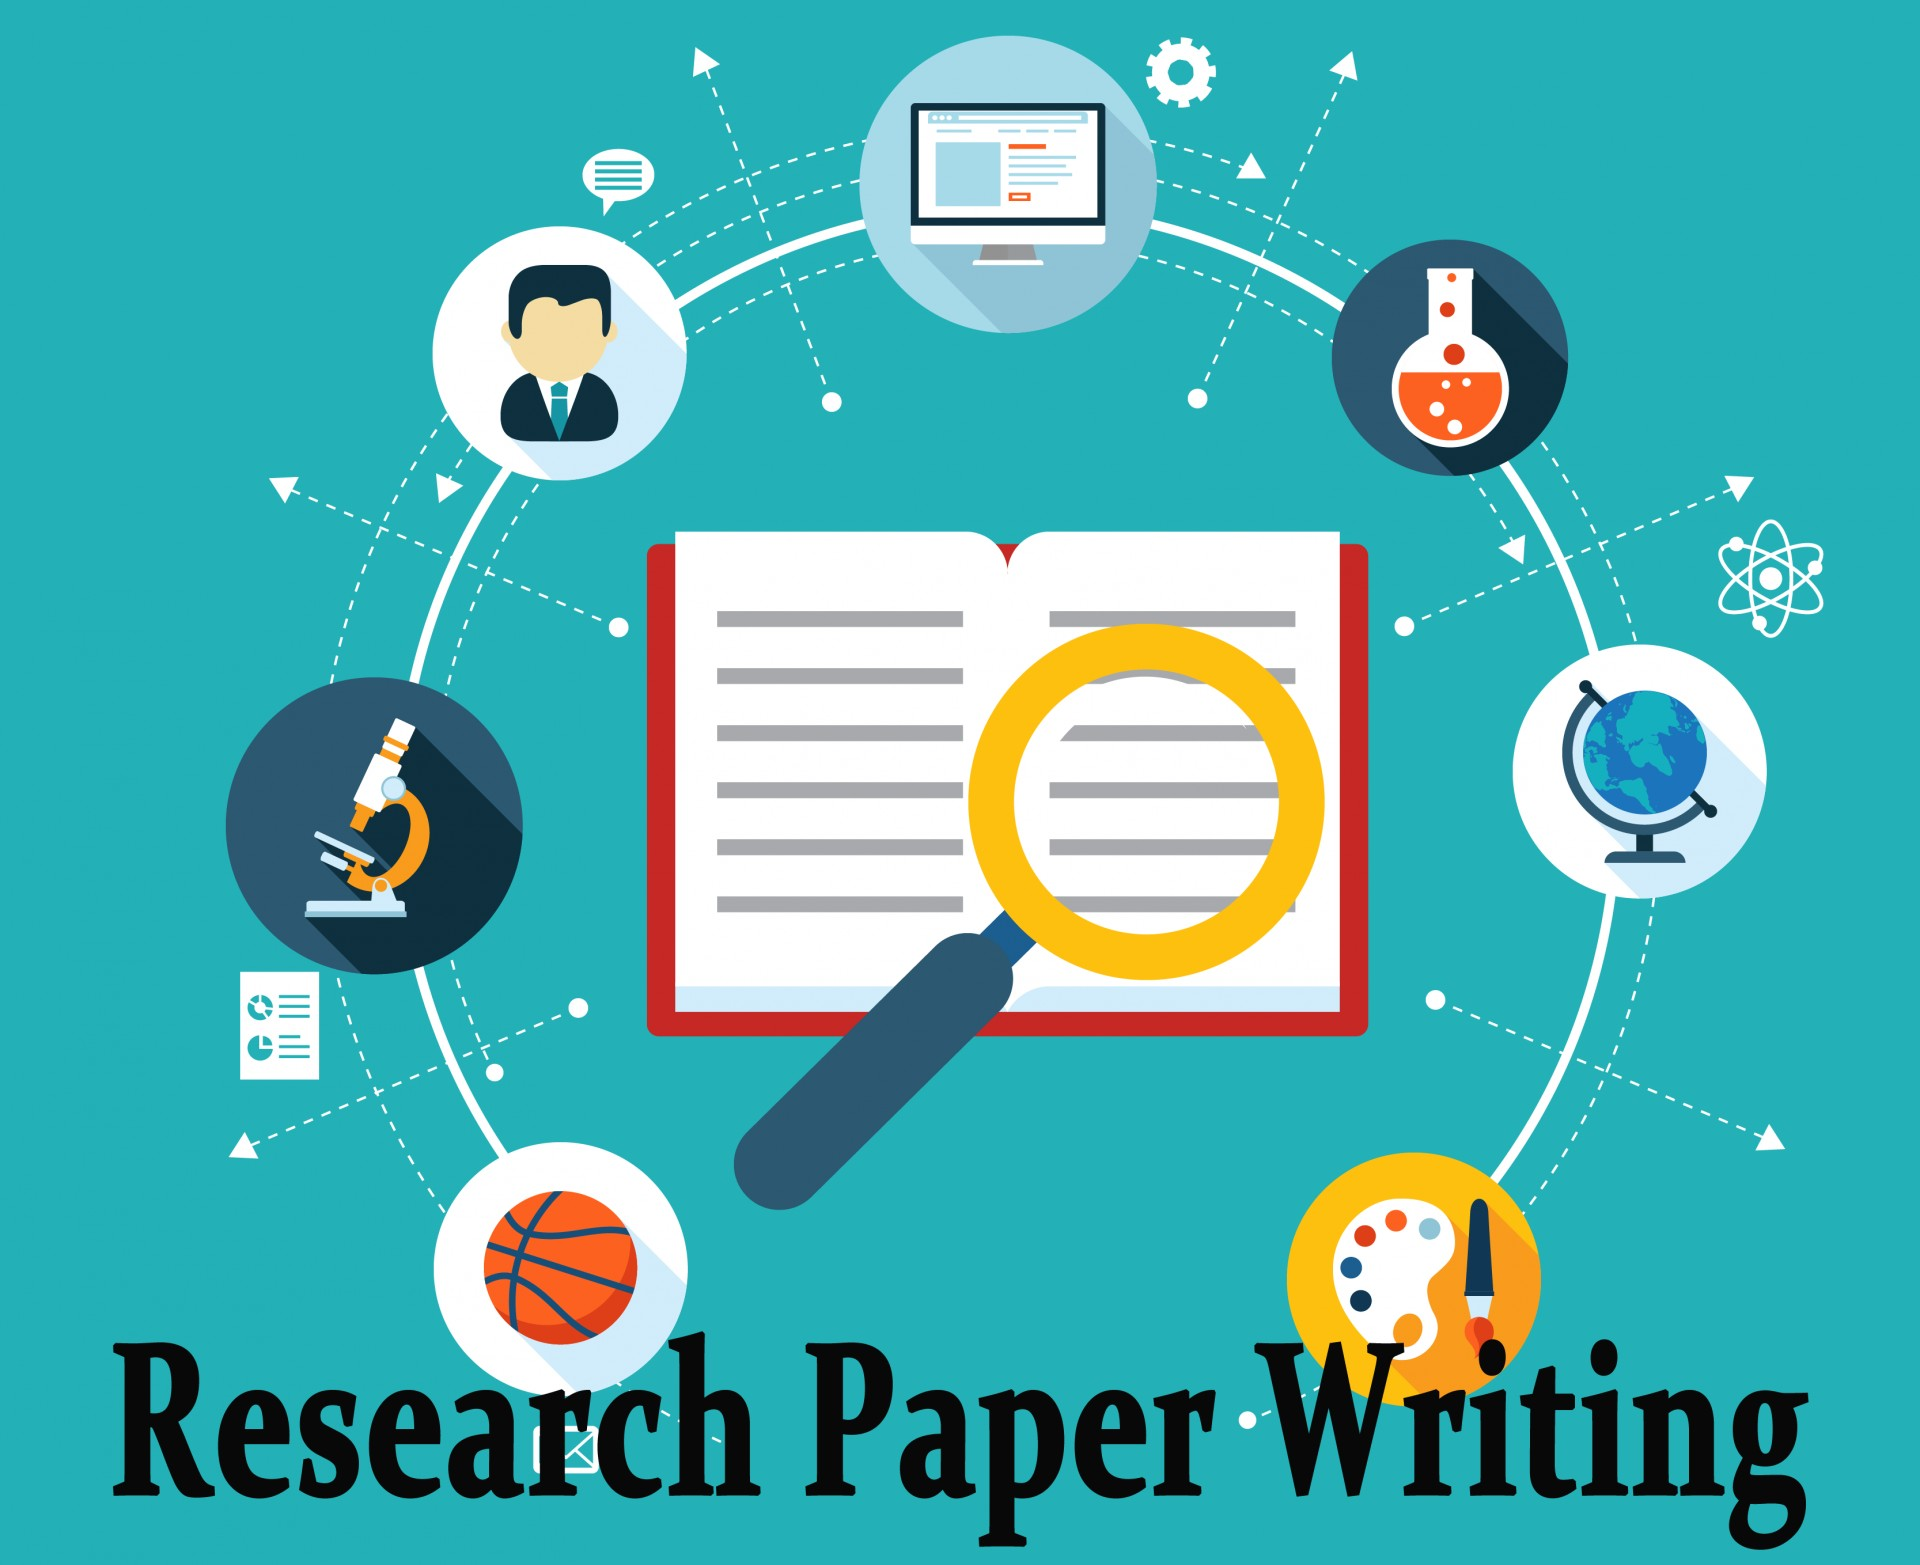 022 Writting Research Paper 503 Effective Writing Dreaded A Tips For Introduction Proposal Template In Apa Format 1920